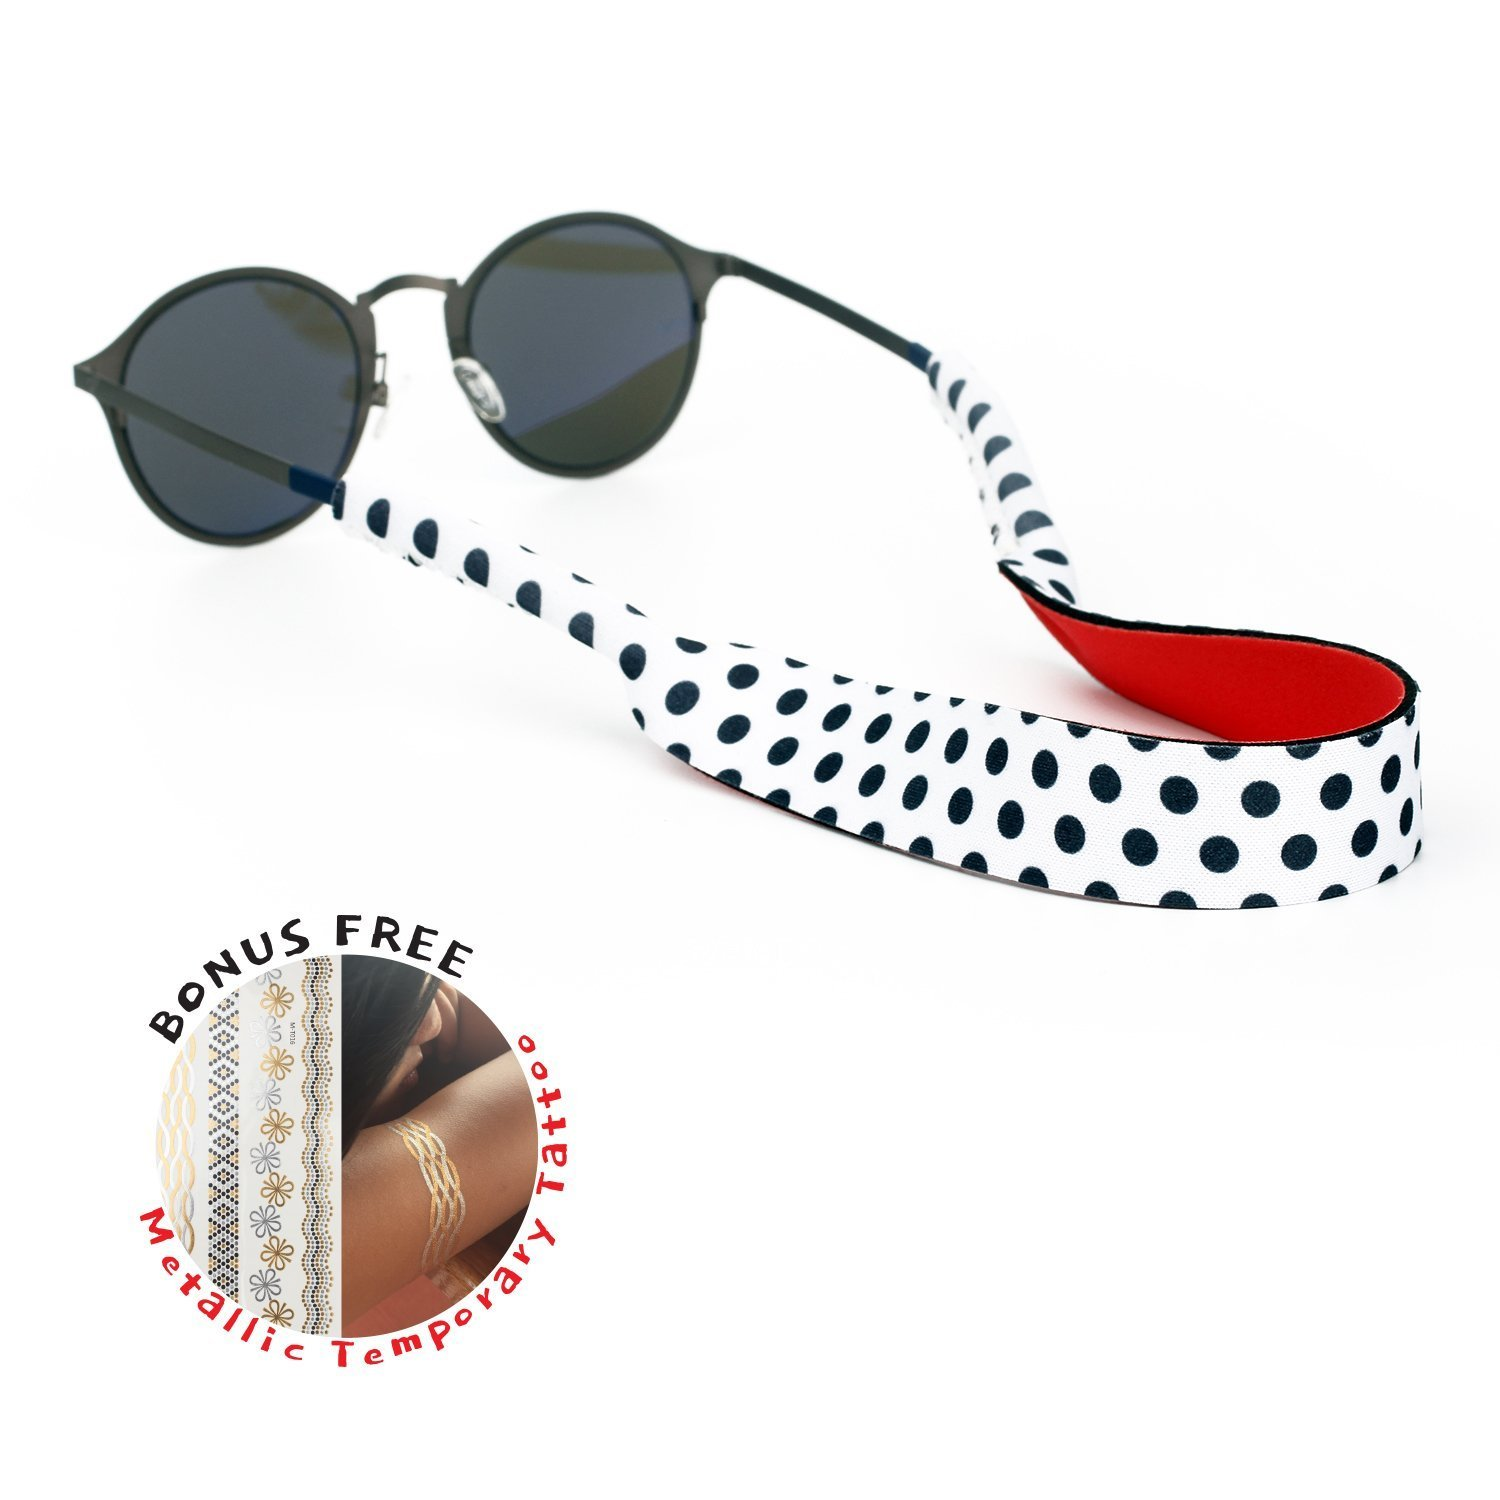 Kiwawa Floating Sunglasses Strap - The Premium Eyewear Retainer designed to float made with soft and durablee floating neoprene material, securing your glasses, glasses and eyewear (Dot Dot)